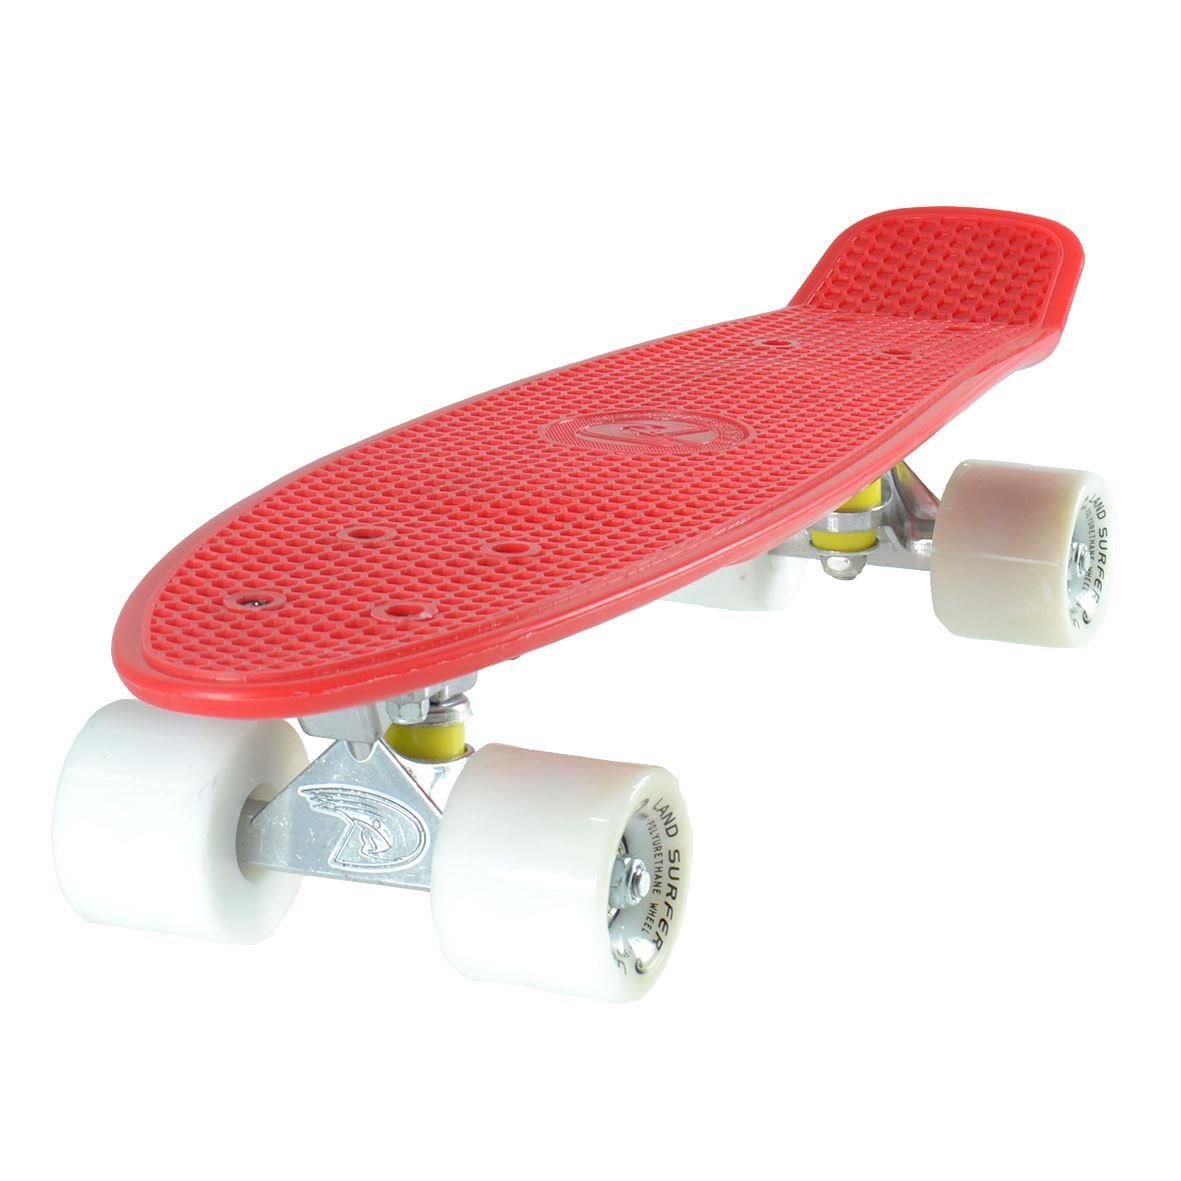 Land Surfer Cruiser Red Skateboard White Wheels